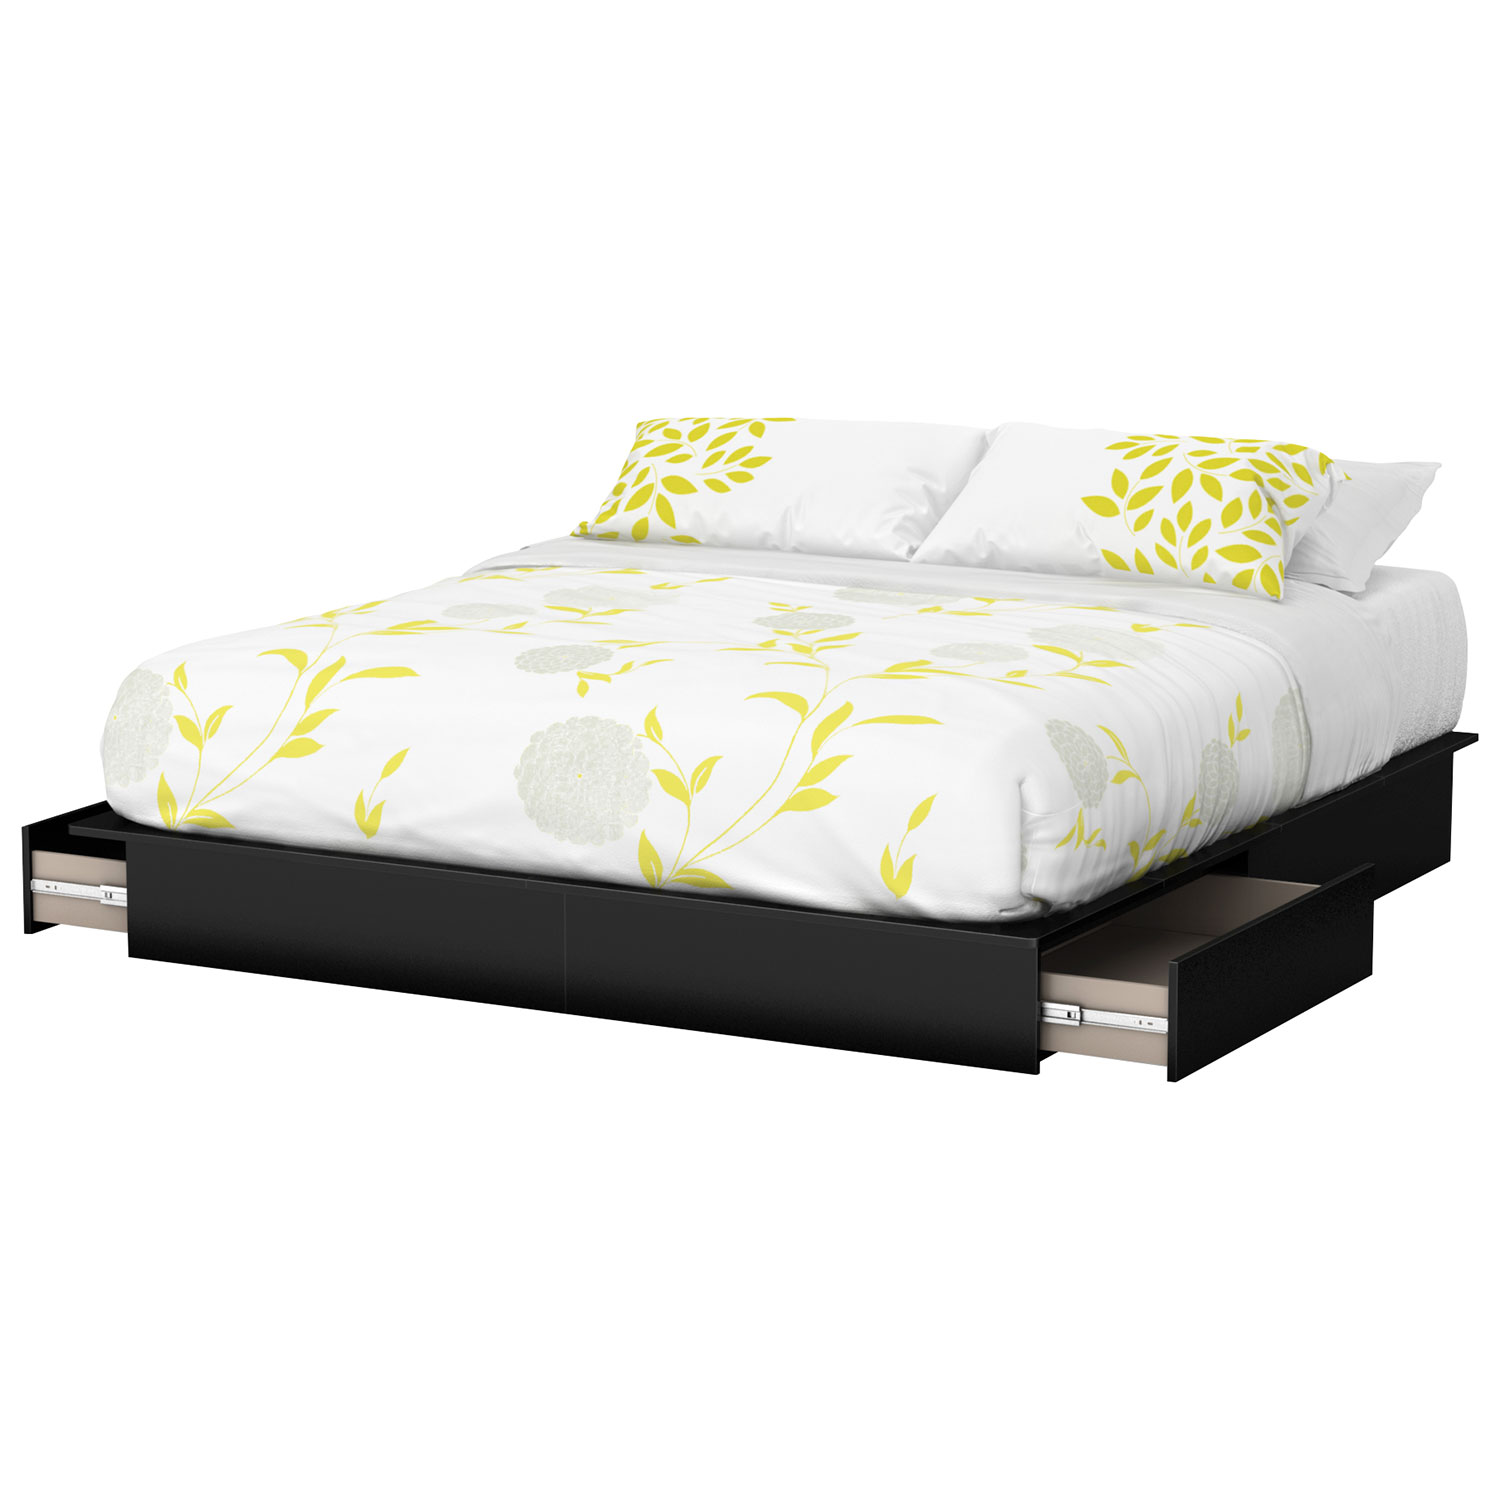 south shore step one contemporary king platform bed (box  of   - south shore step one contemporary king platform bed (box  of )  pureblack  not sold separately  oem  english  best buy canada